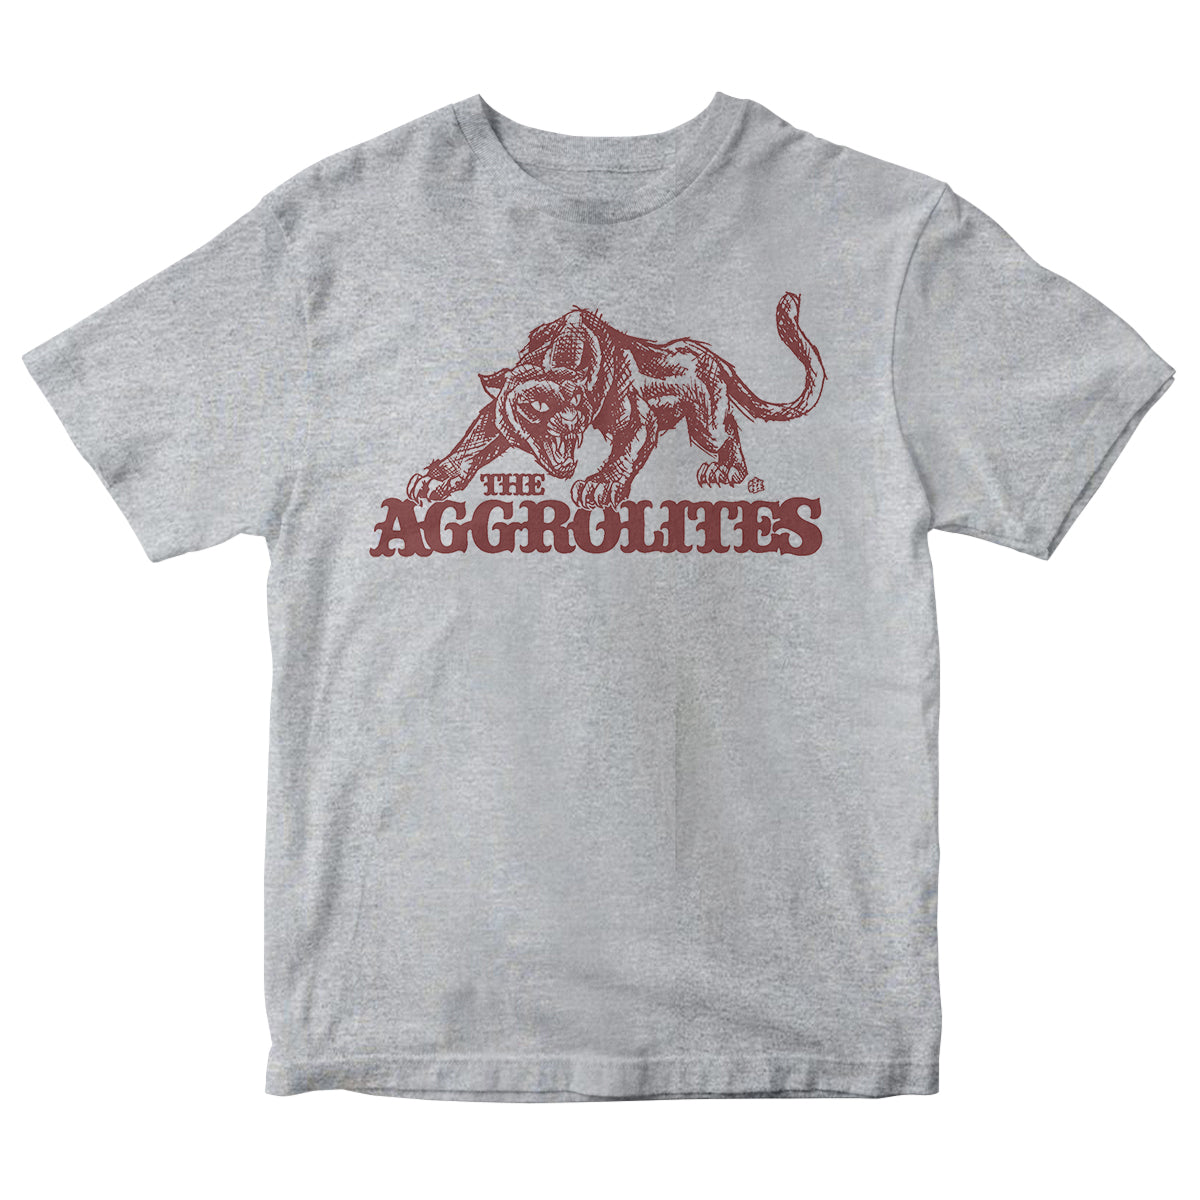 The Aggrolites - Aggropanther - Grey - T-Shirt